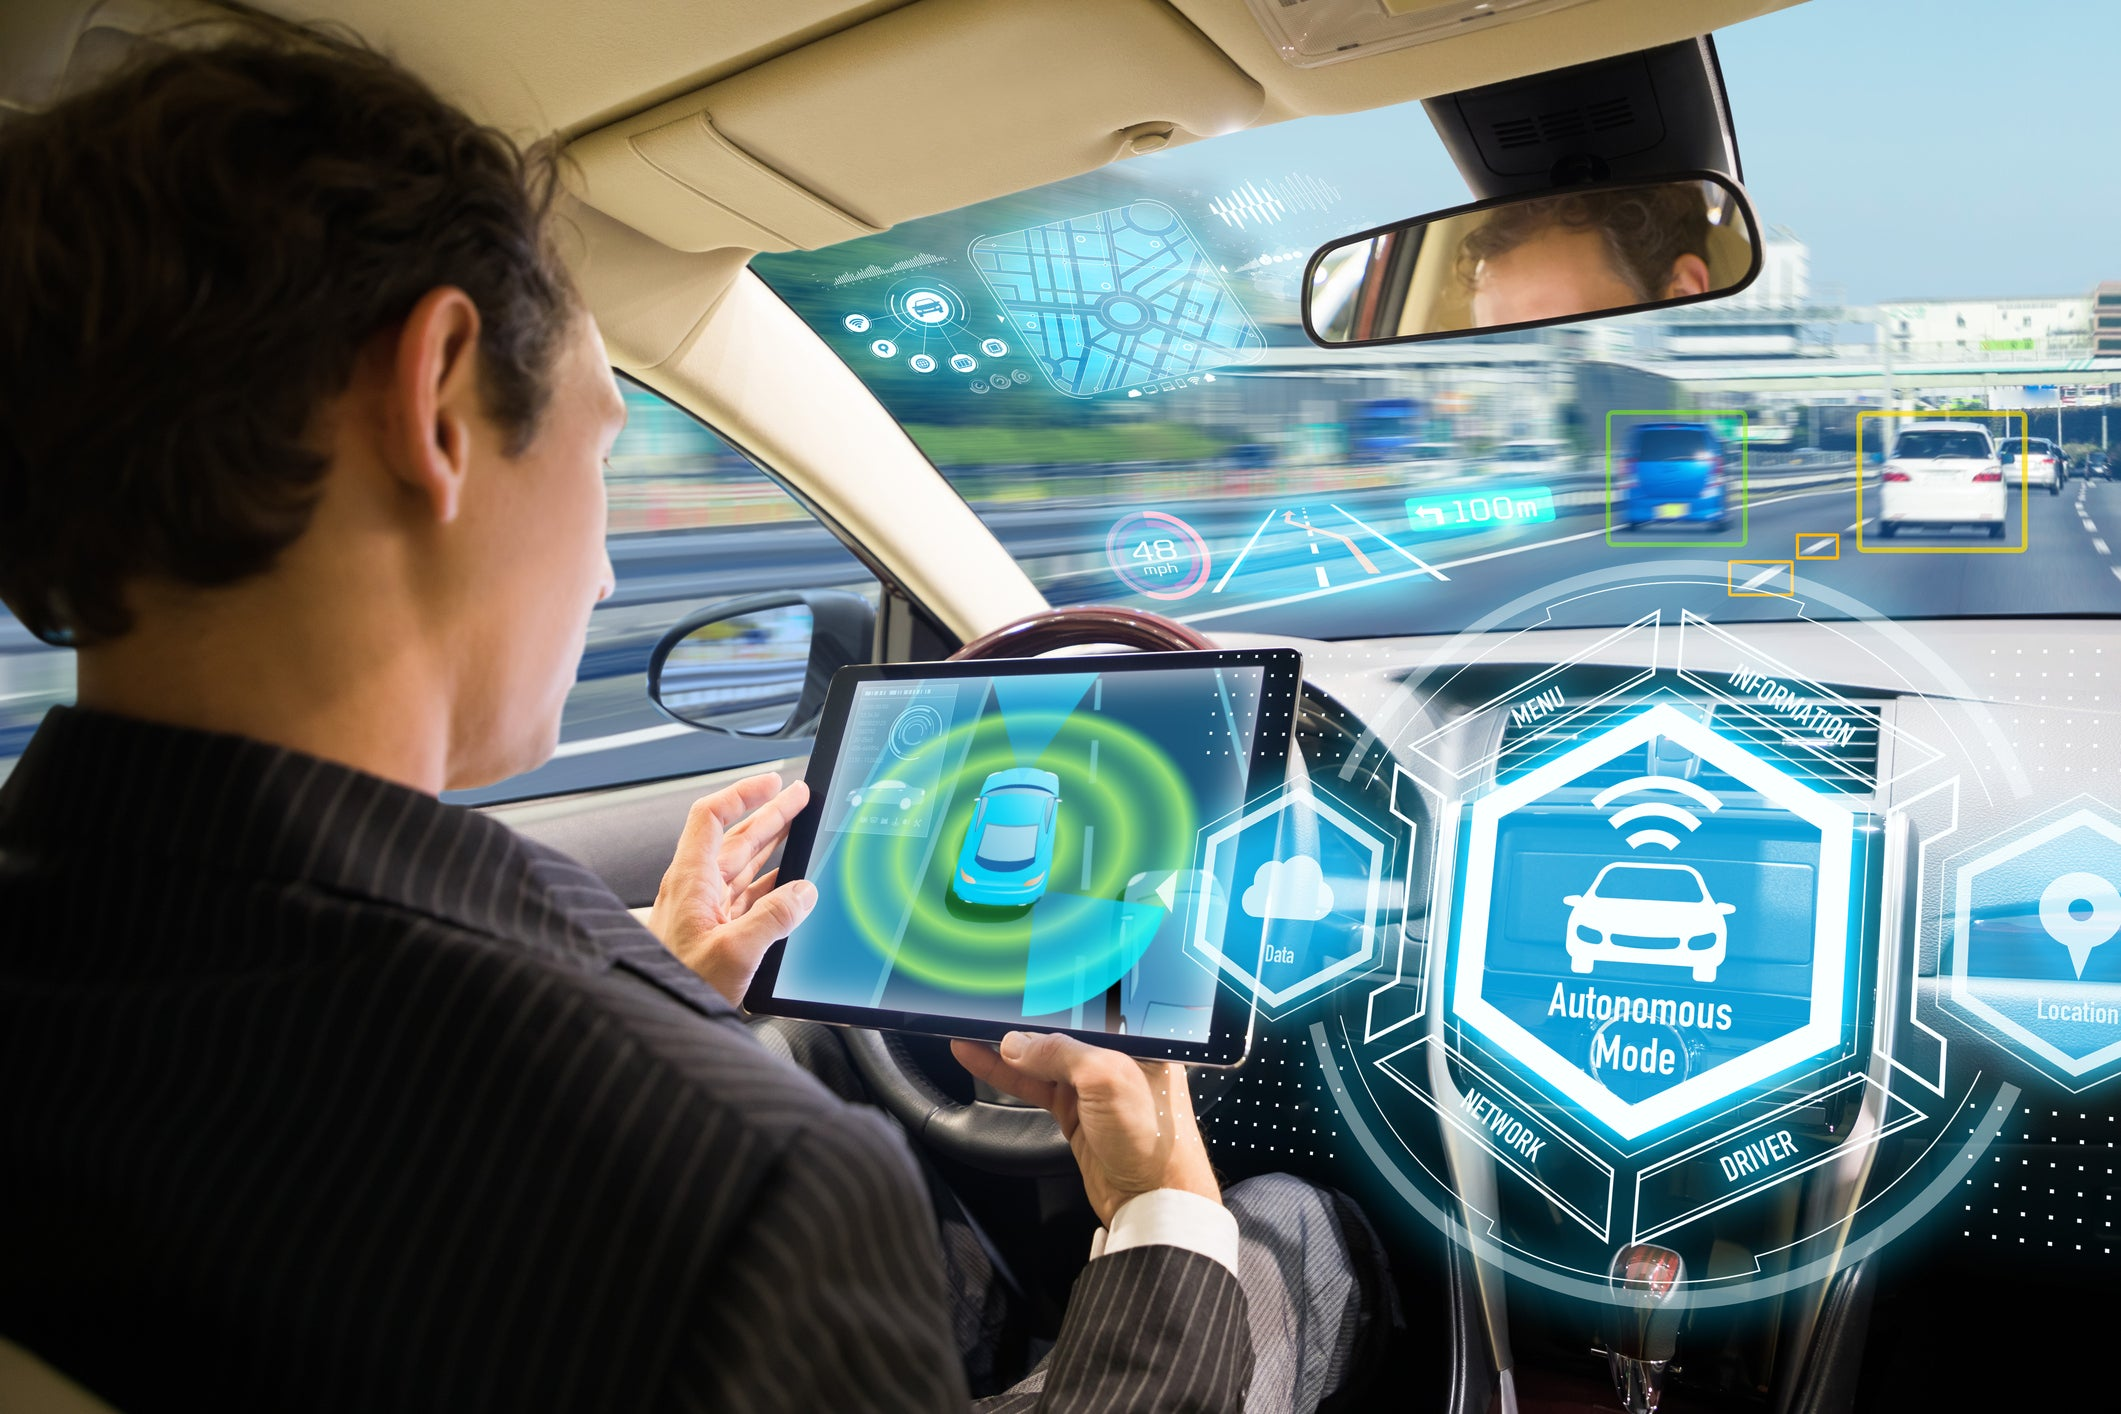 Man on a tablet in a driverless vehicle.